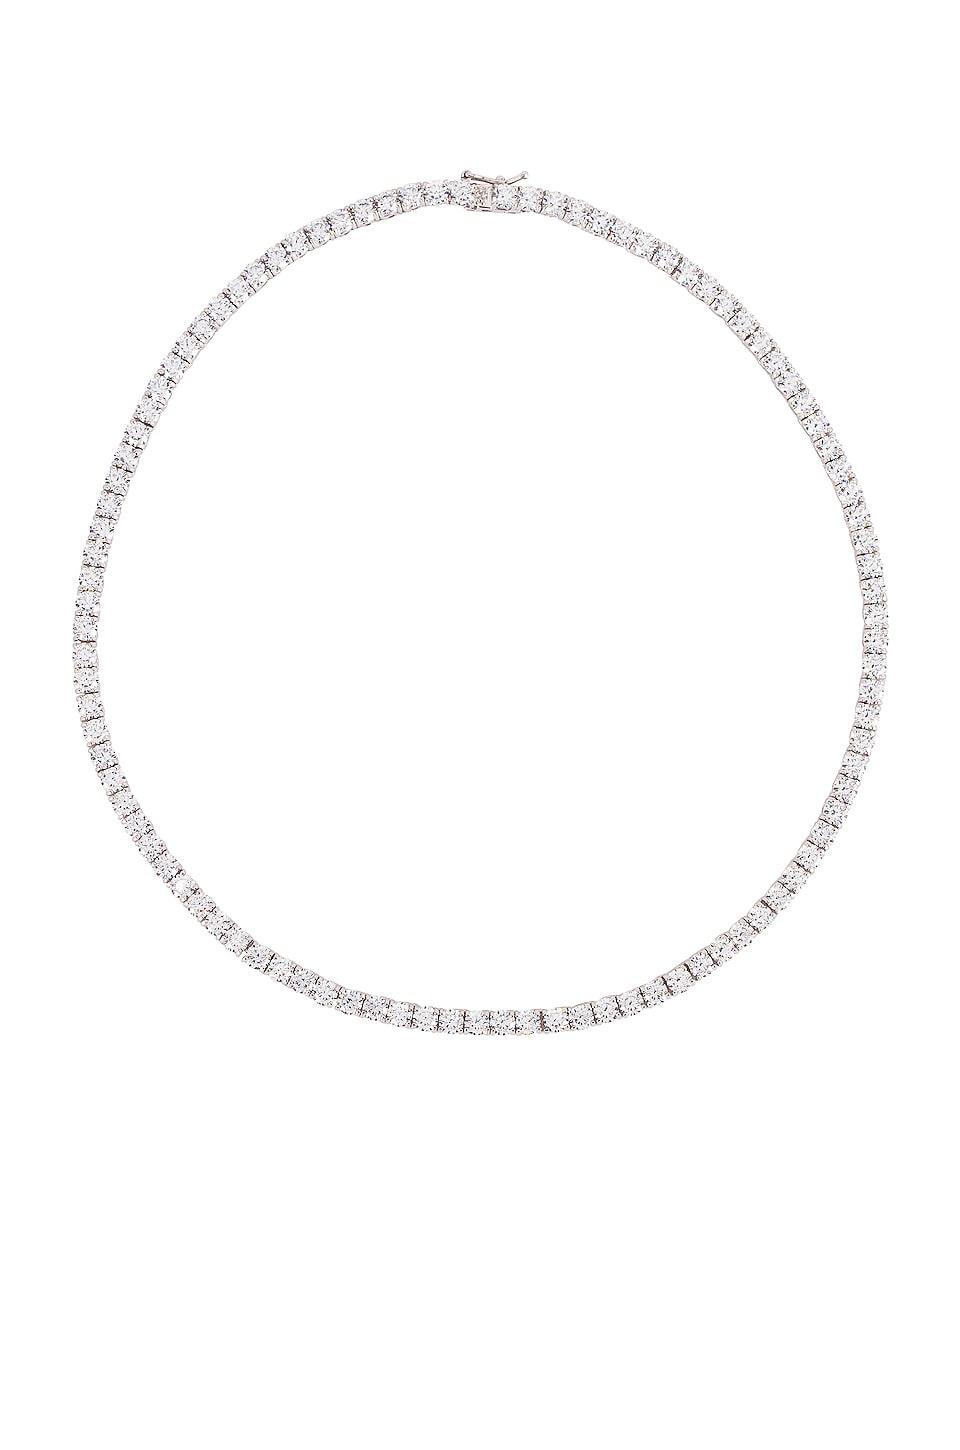 The M Jewelers NY Full Iced Out Necklace in Sterling Silver